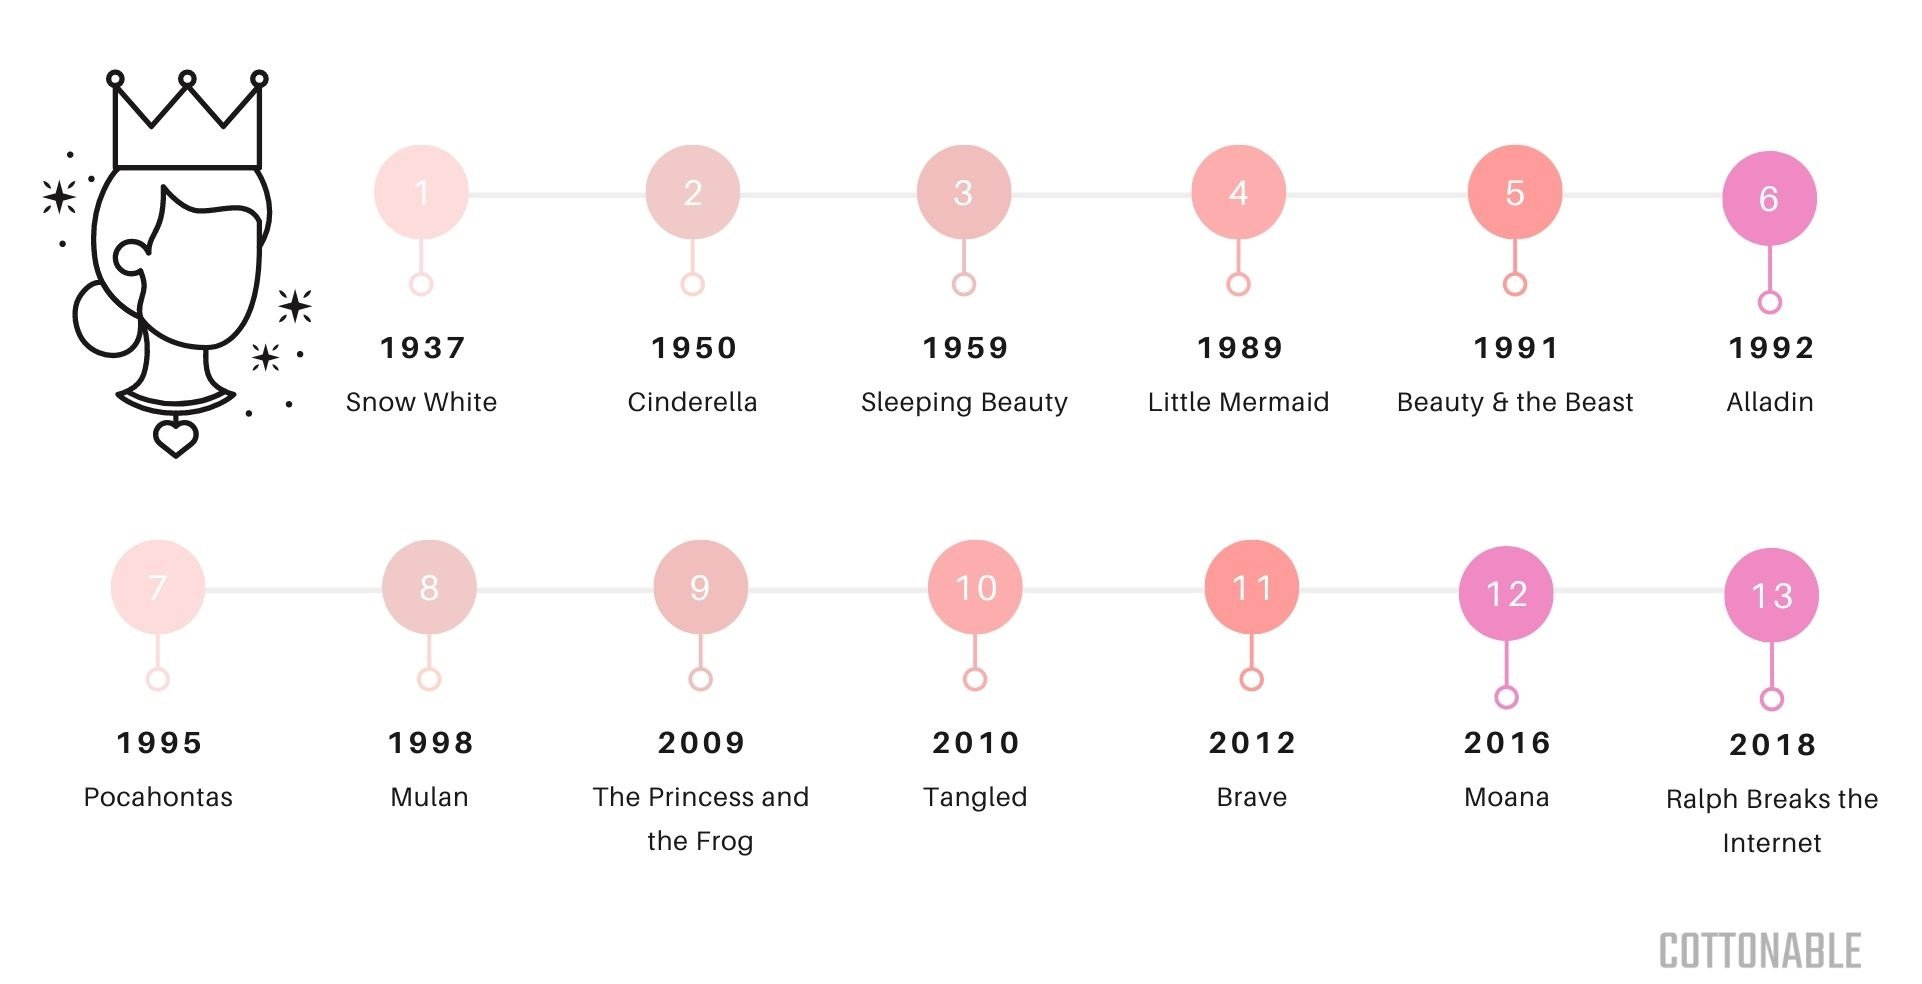 Disney princess movies timeline chart